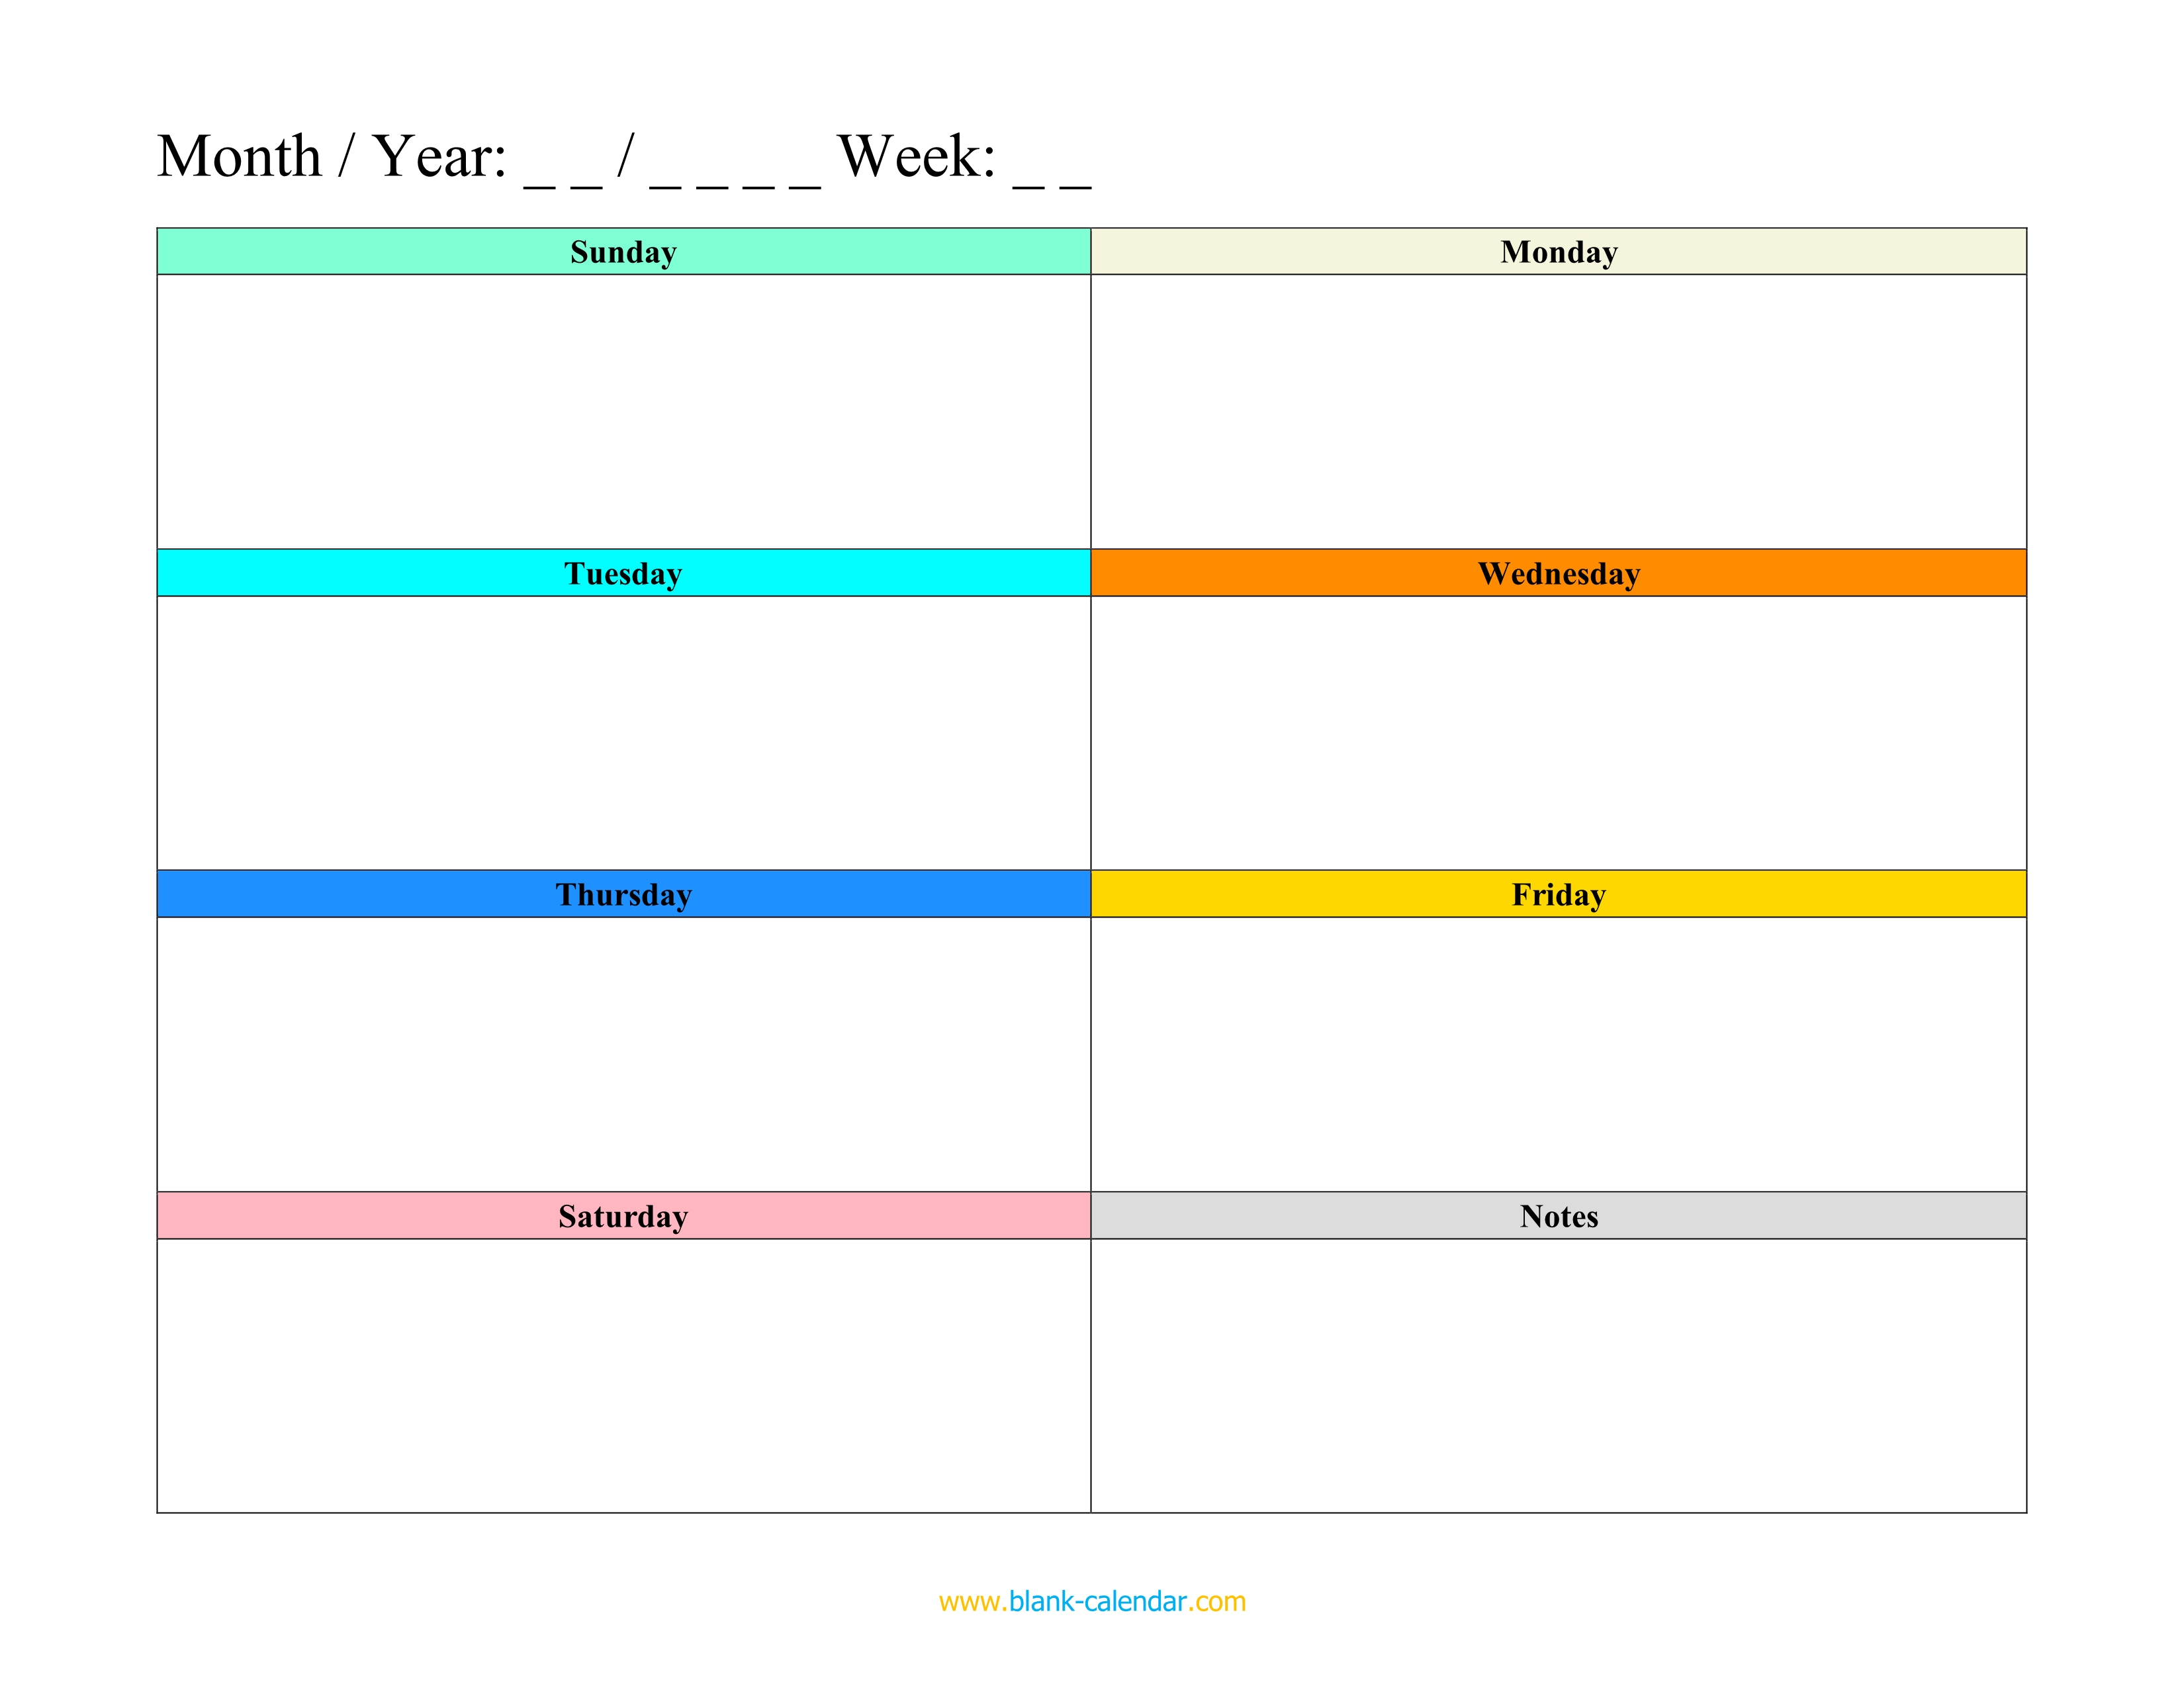 Weekly Schedule Planner Templates (WORD, EXCEL, PDF)